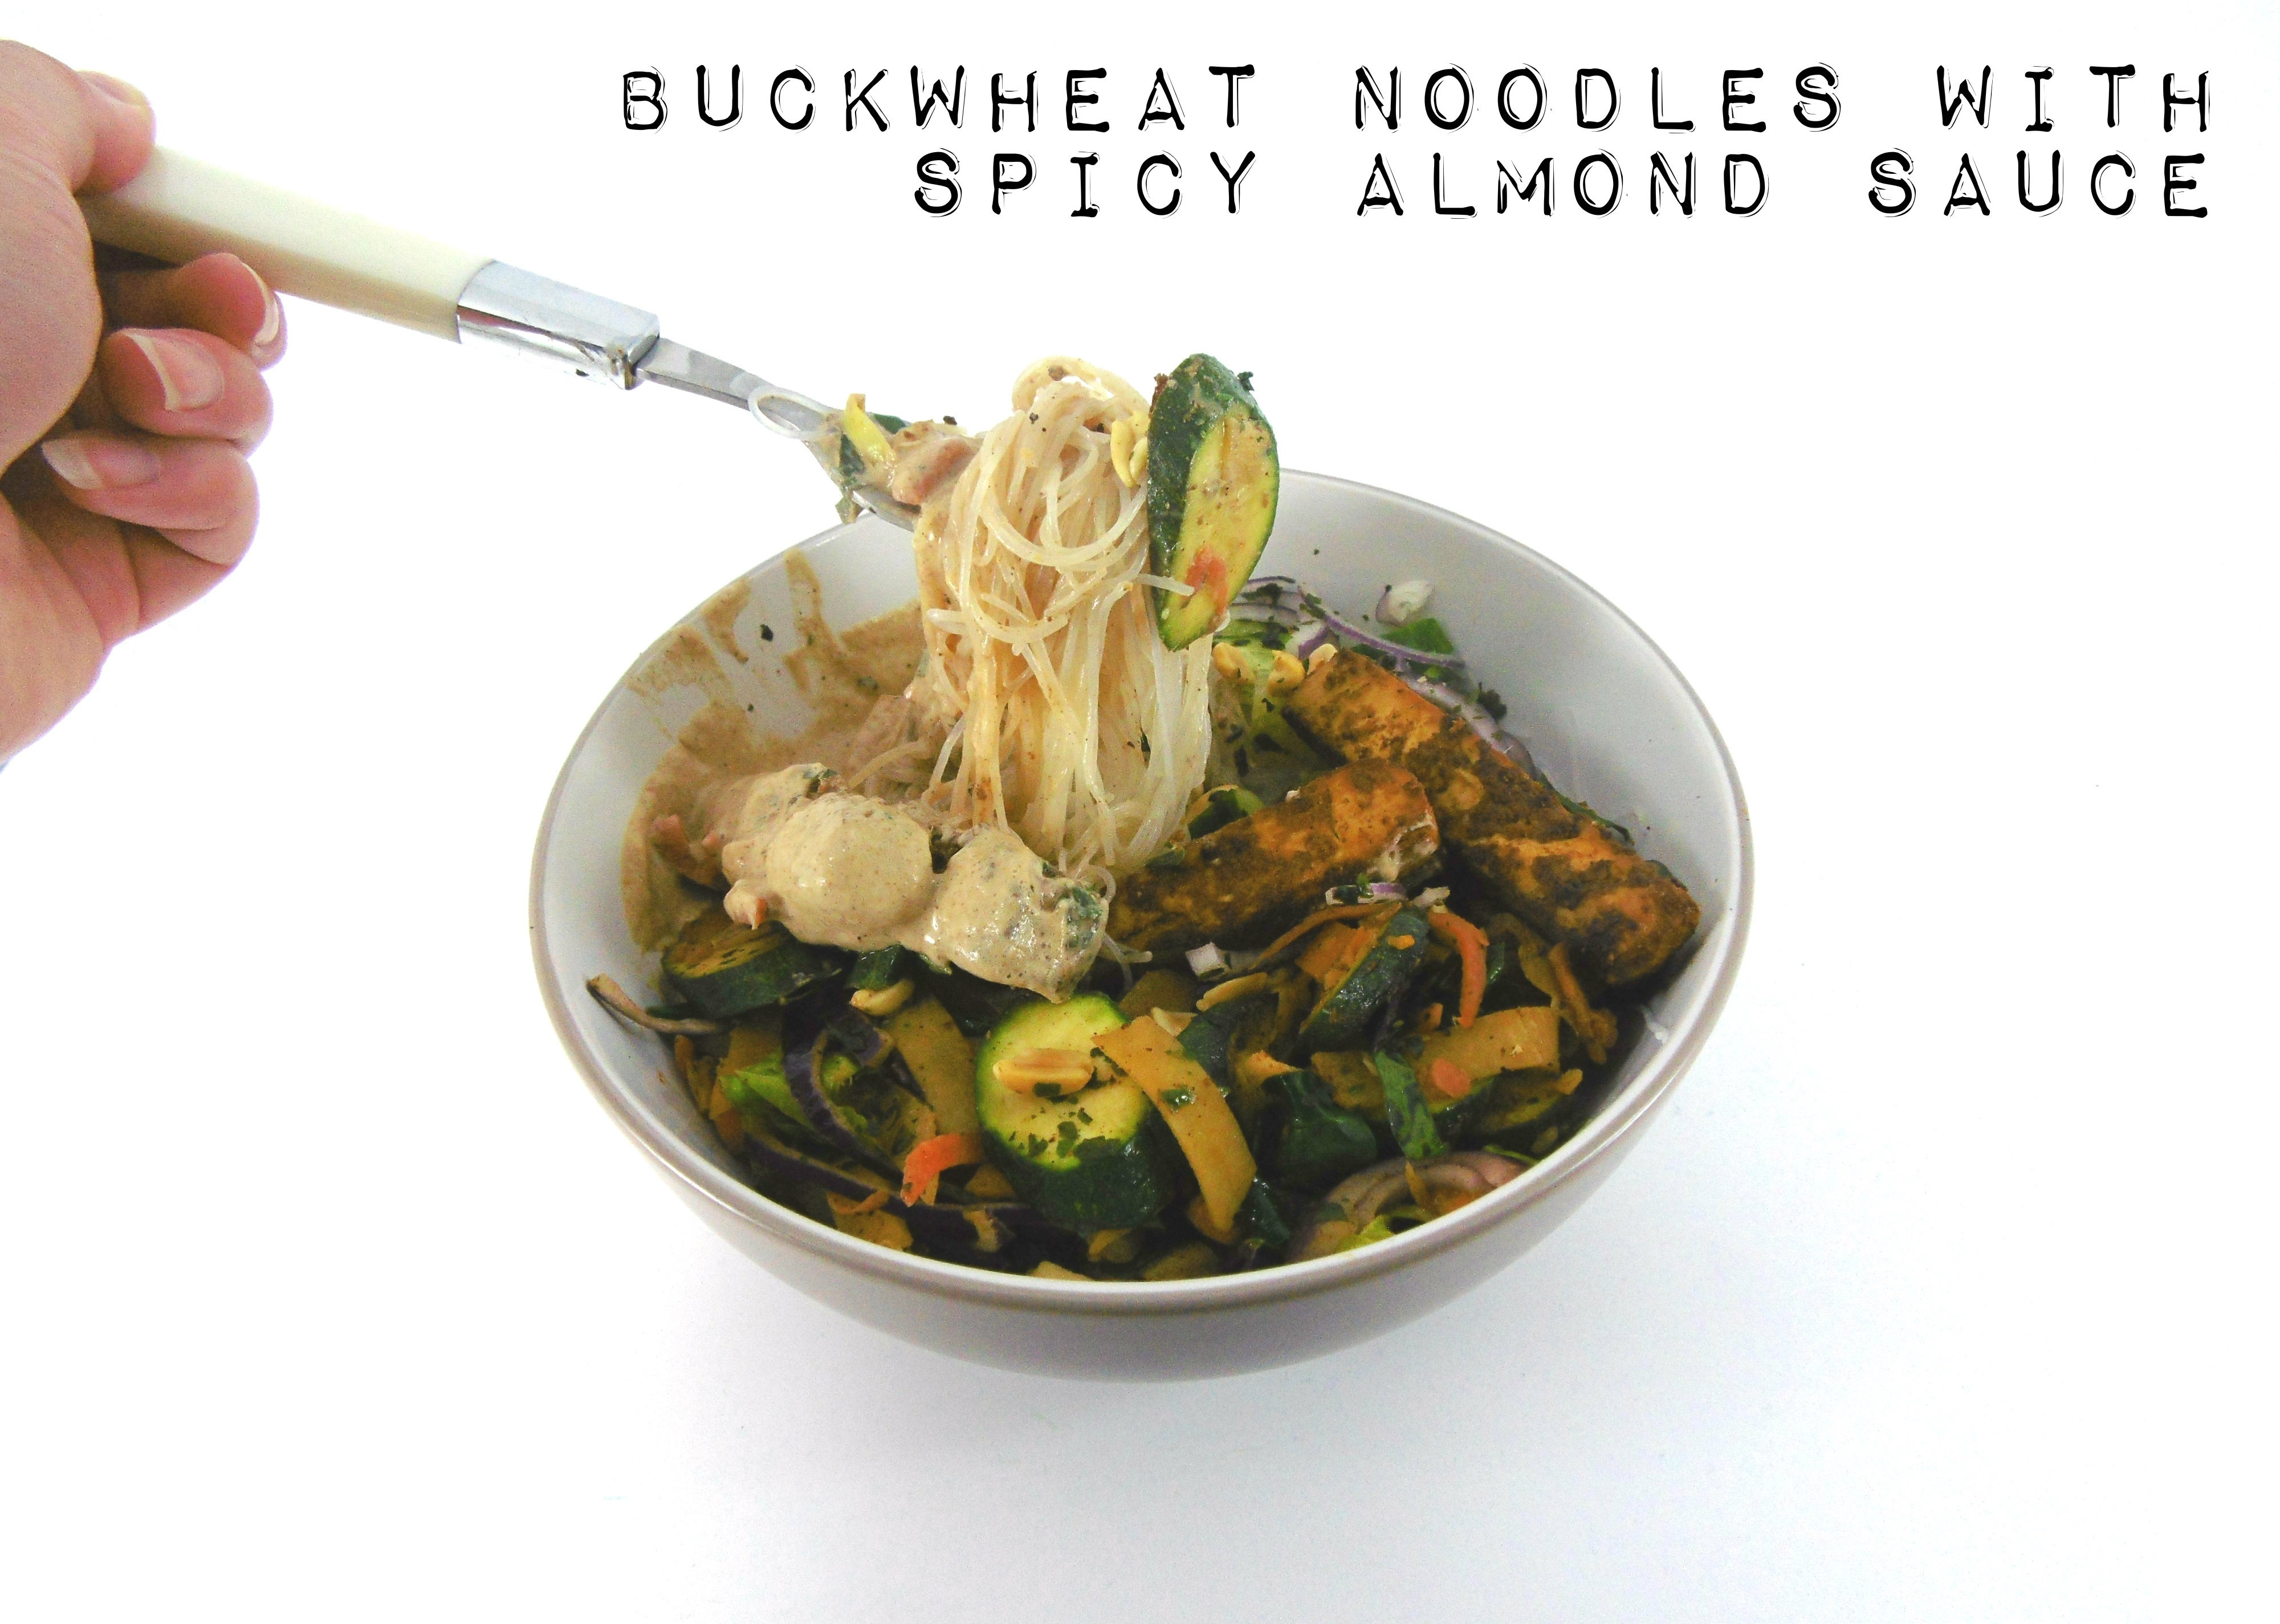 The Long Awaited Crave, Eat, Heal Blog Tour: Review, Giveaway and Buckwheat Noodles with Spicy Almond Sauce Recipe!